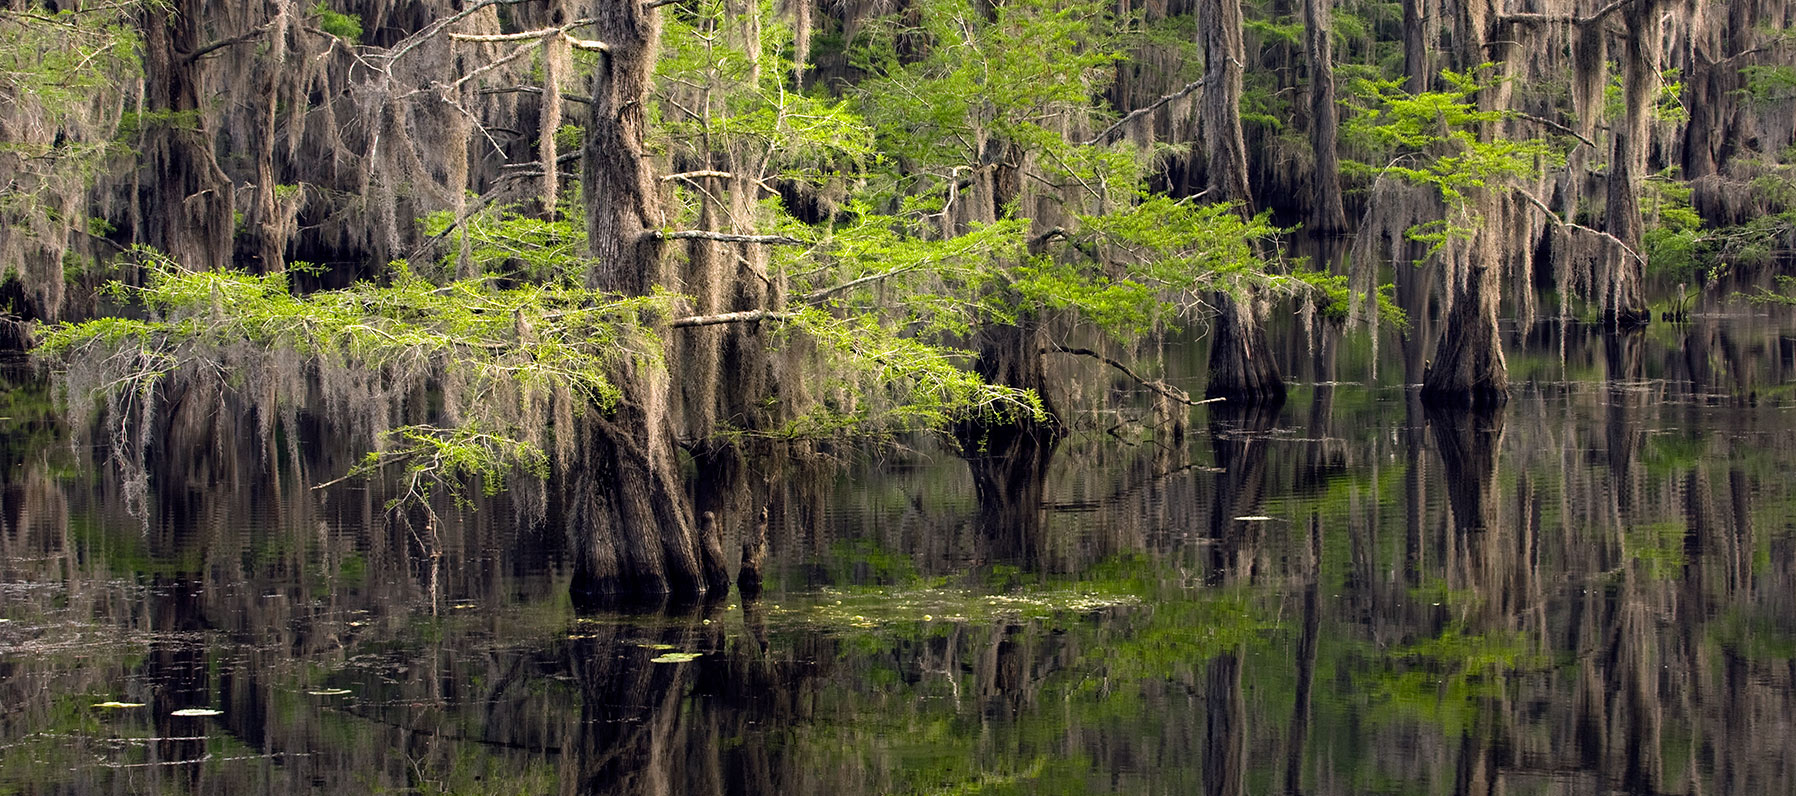 Caddo lake state park texas parks wildlife department for How much does a fishing license cost in texas